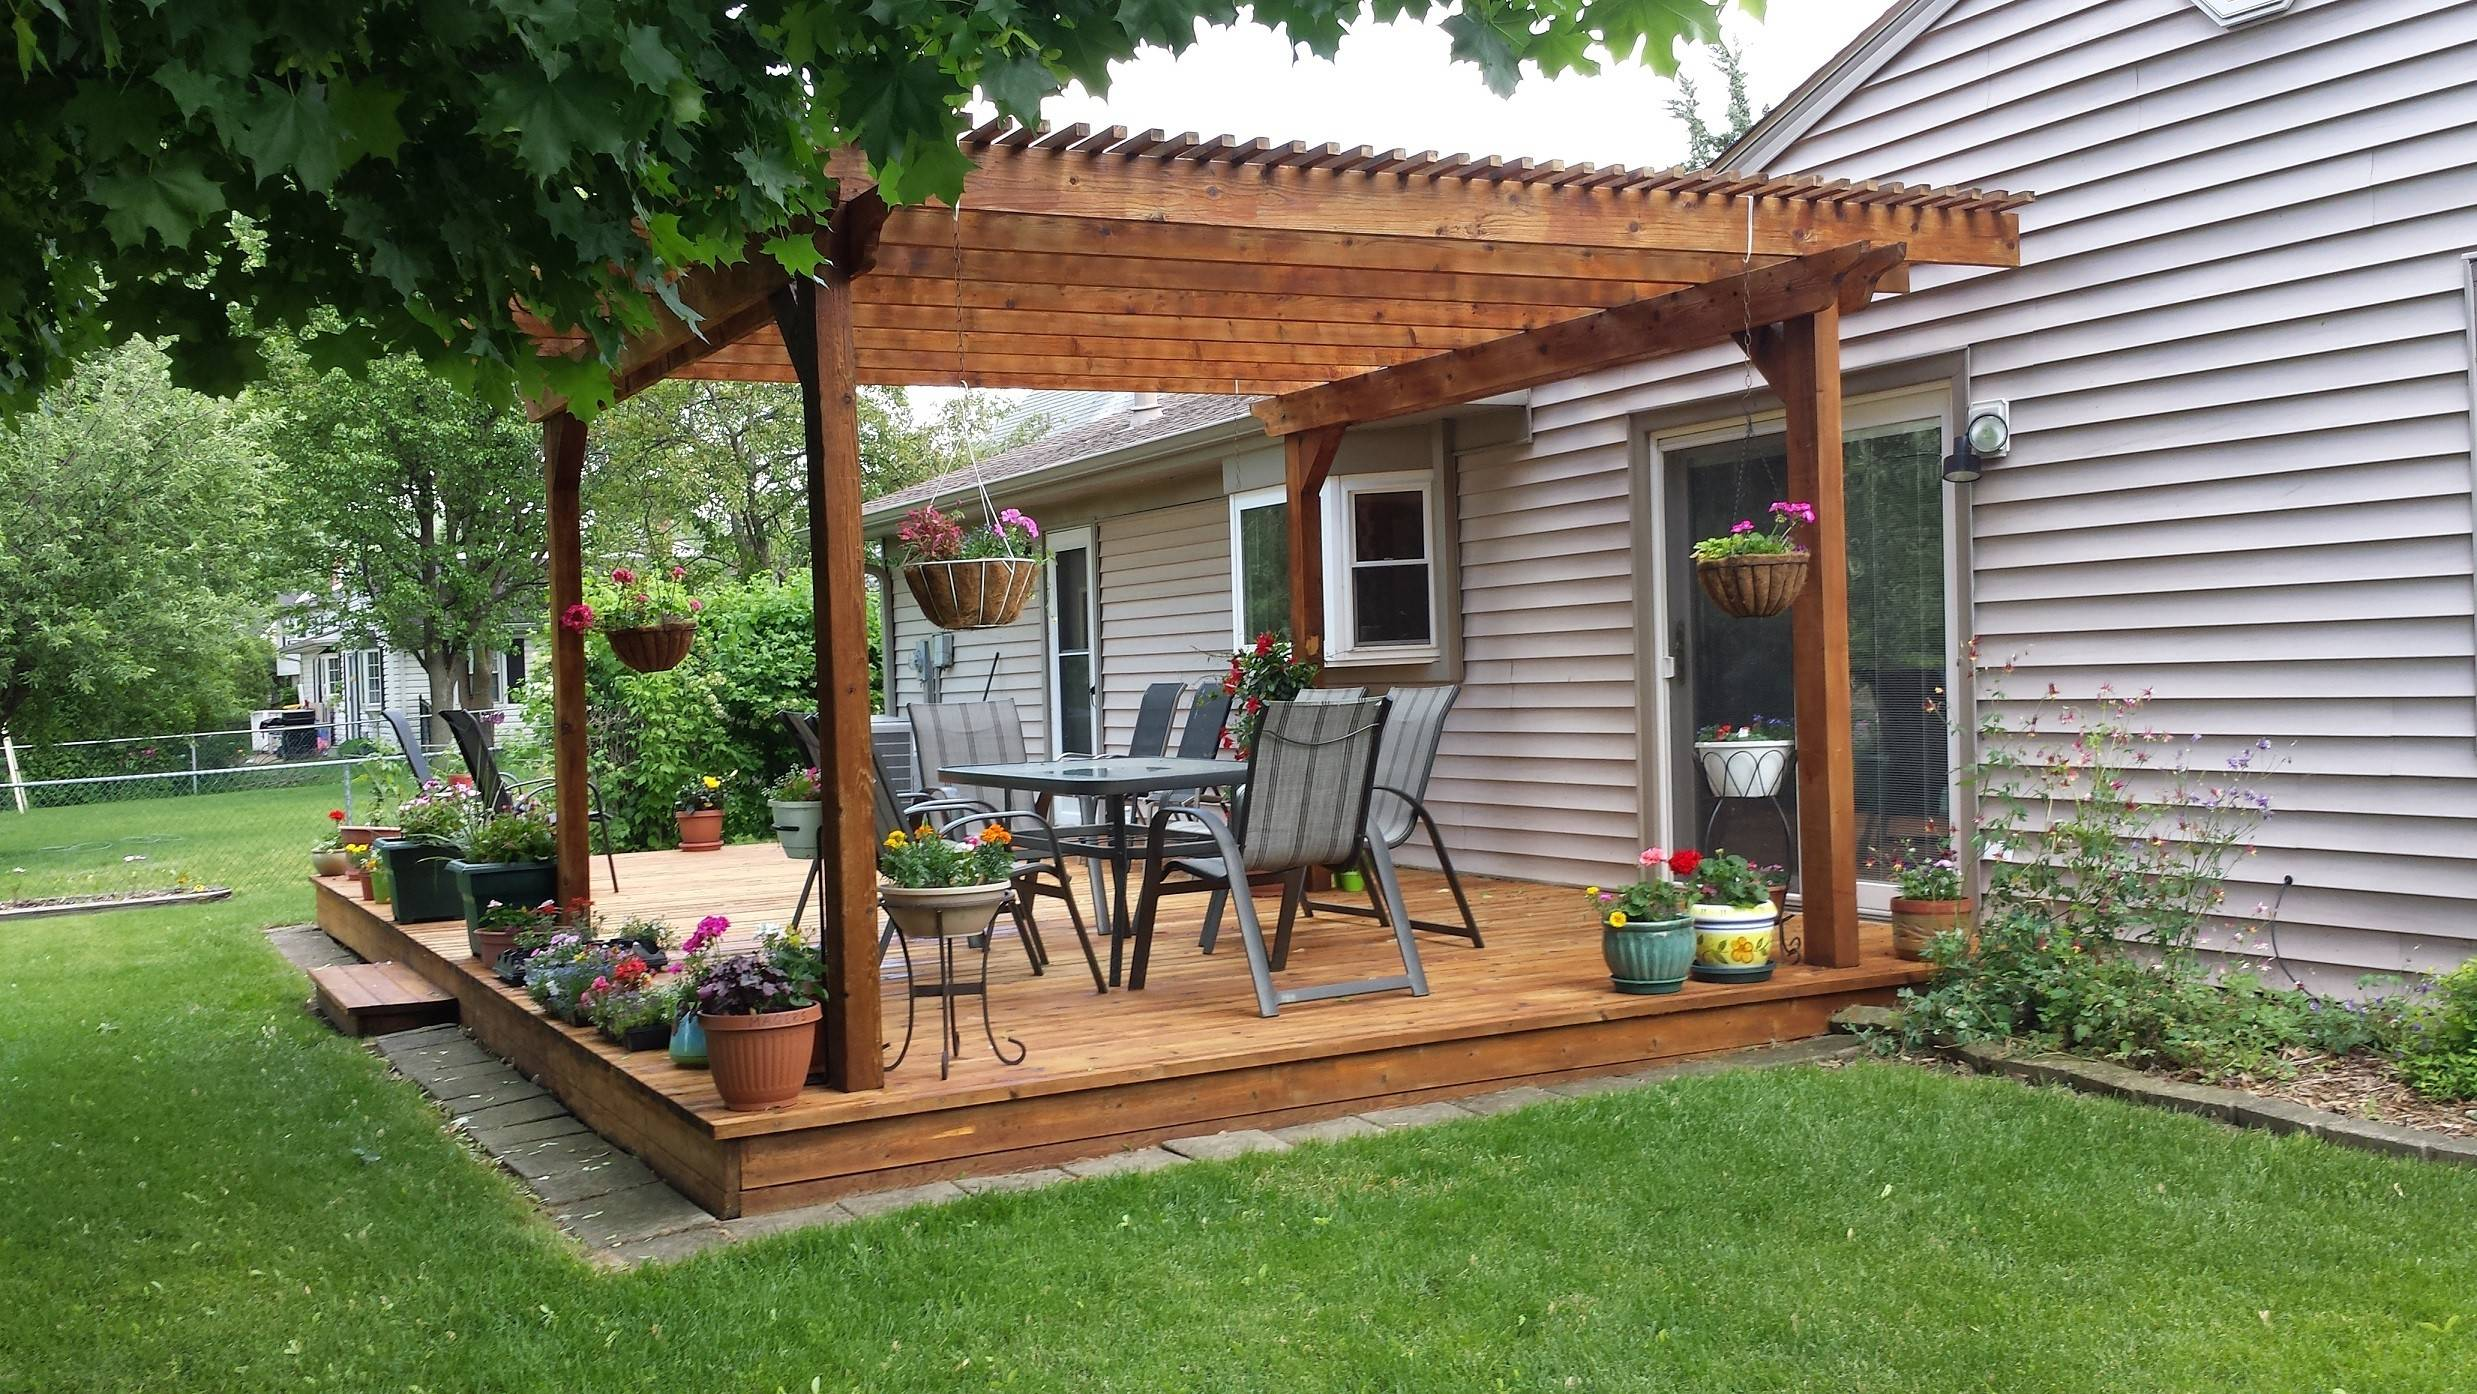 Deck Monkeys provides a range of home cleaning services, but its specialty is staining decks with Australian timber oil.